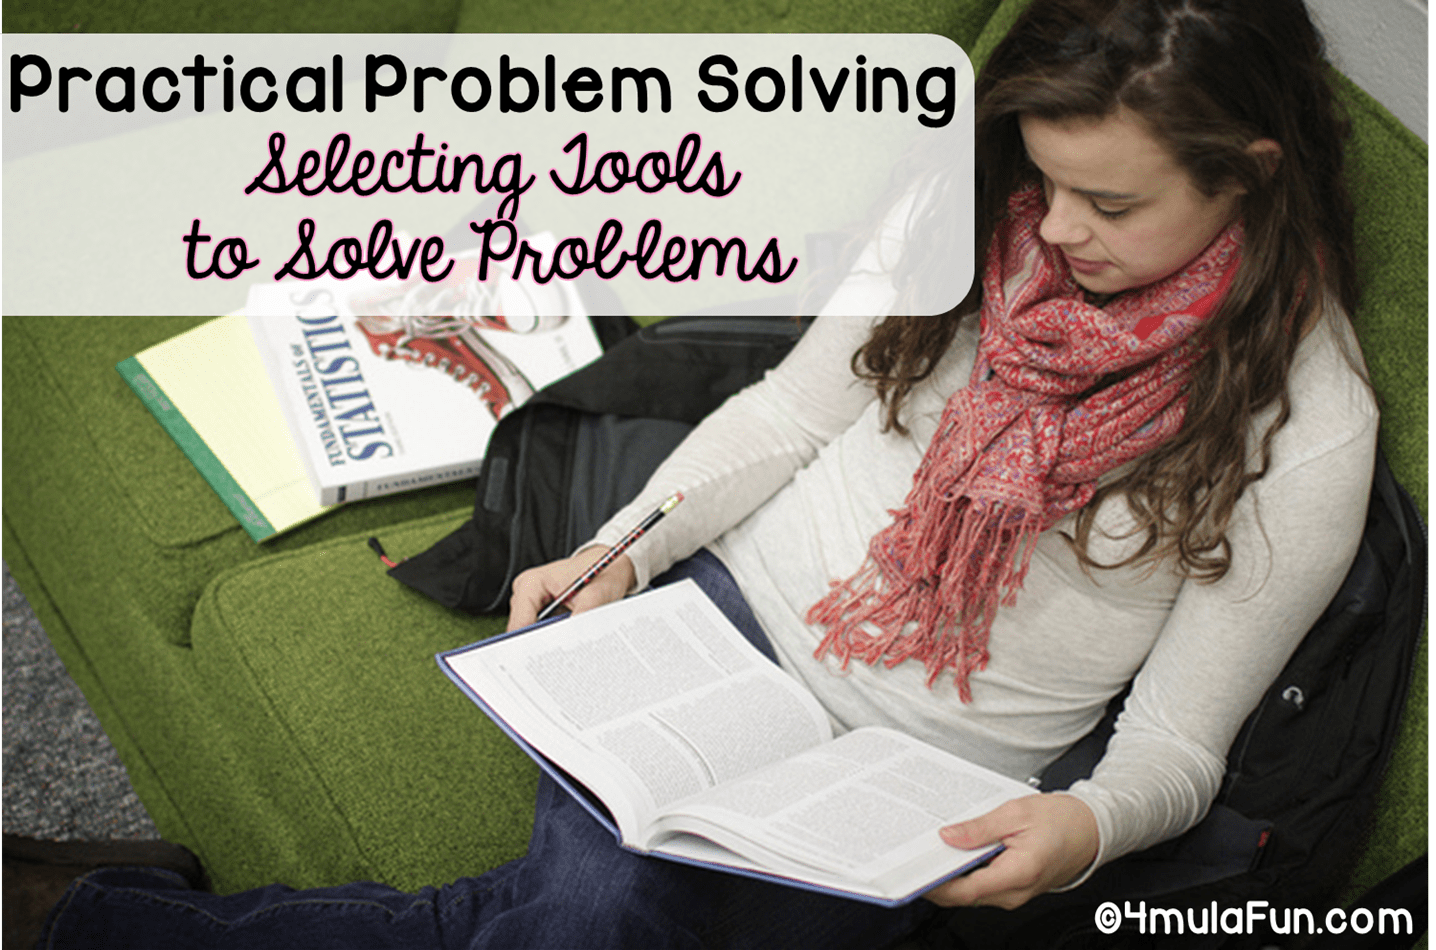 Selecting Tools to Solve Problems